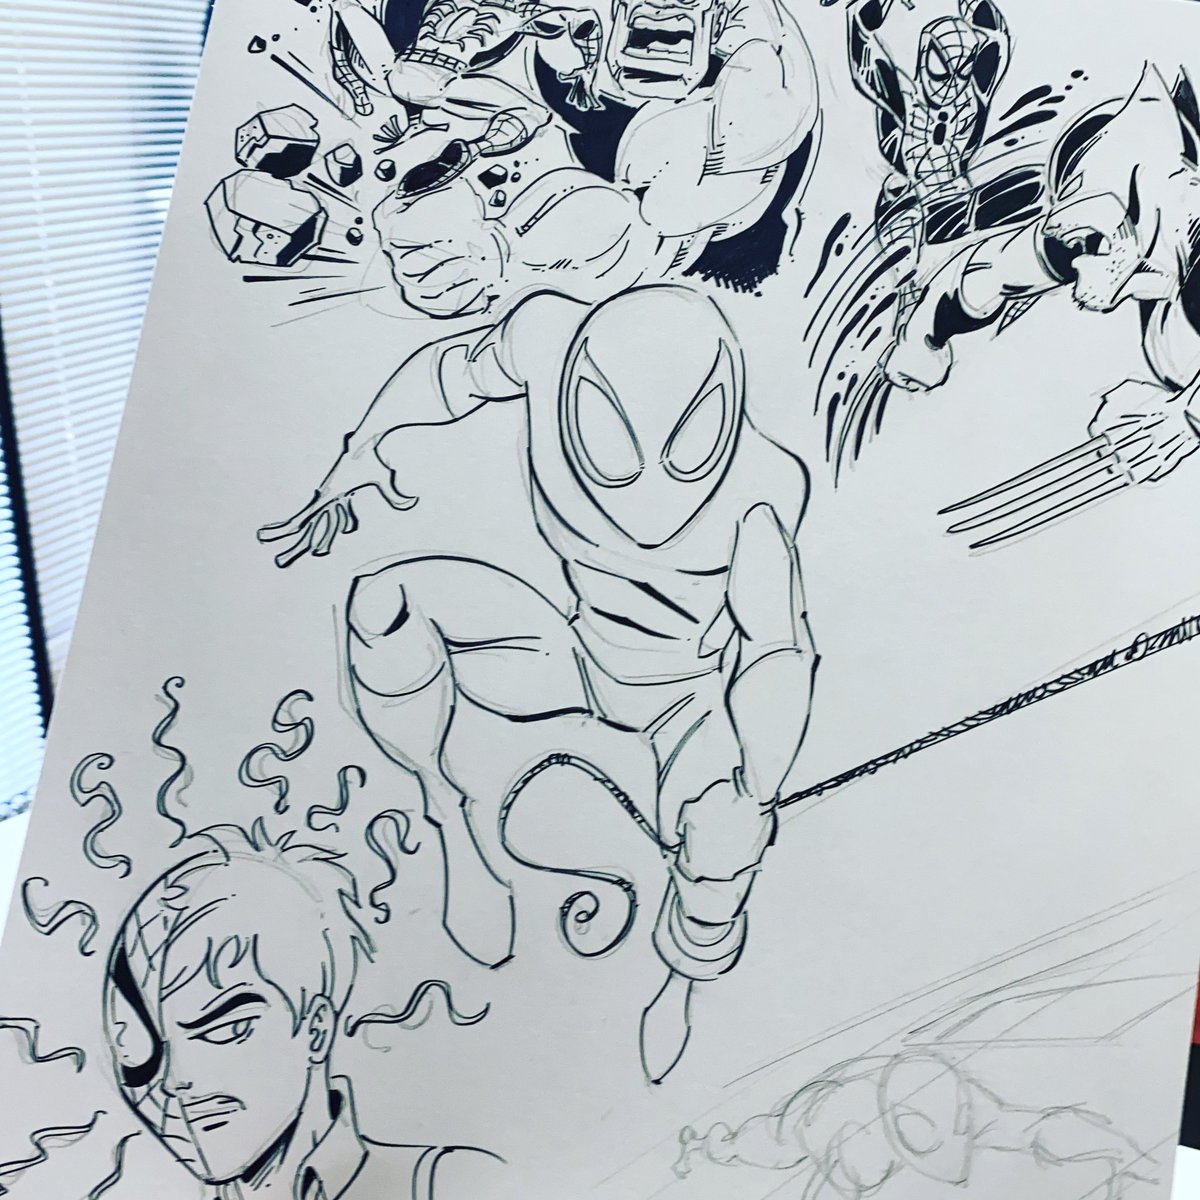 Spider Page 🕷 #butchhartmandraws #spiderman https://t.co/YkcytSyfLa